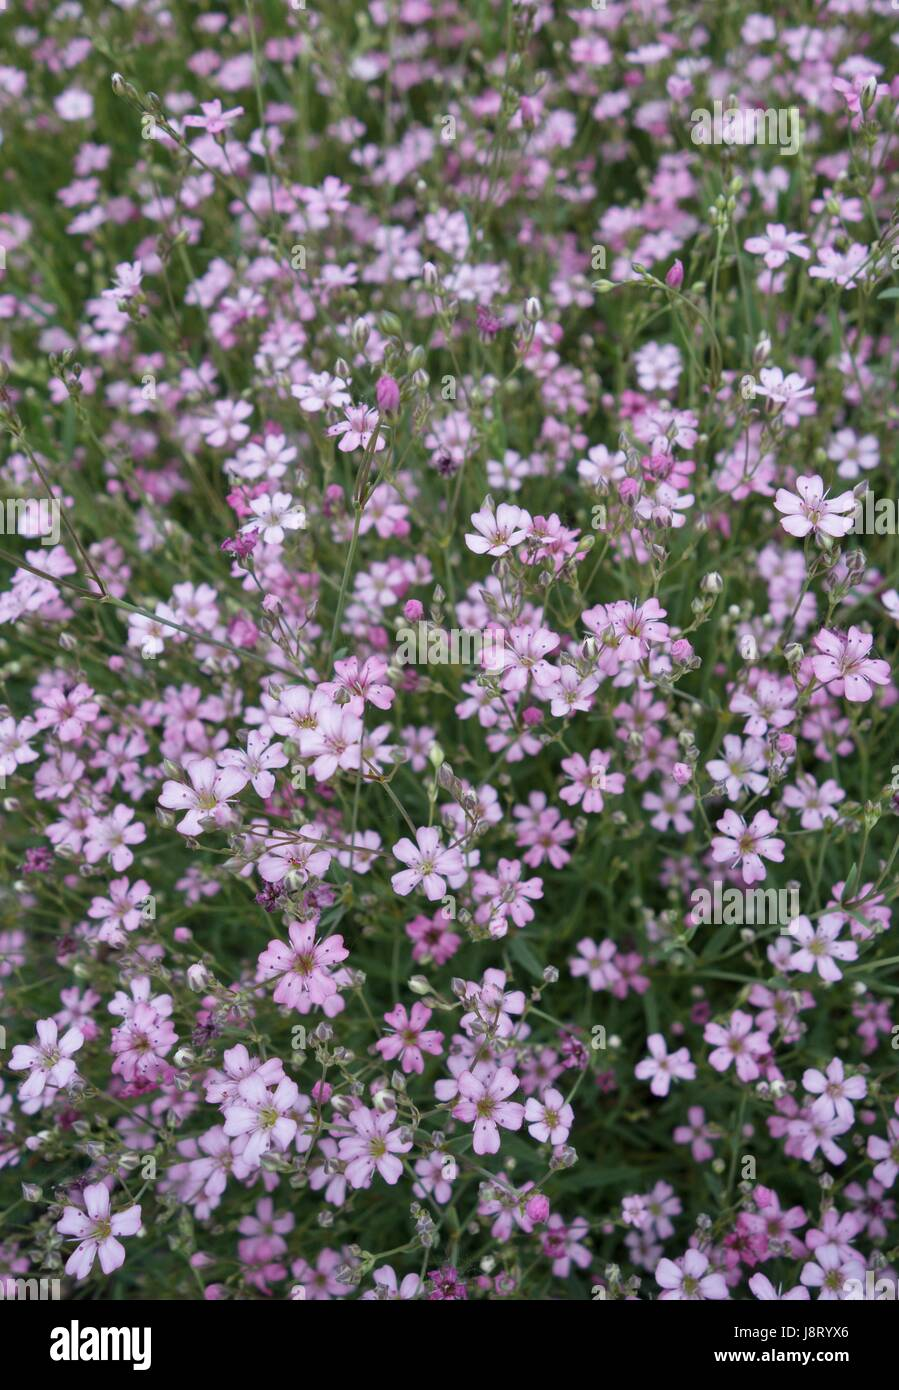 Small purple ground cover flowers stock photo 143126990 alamy small purple ground cover flowers mightylinksfo